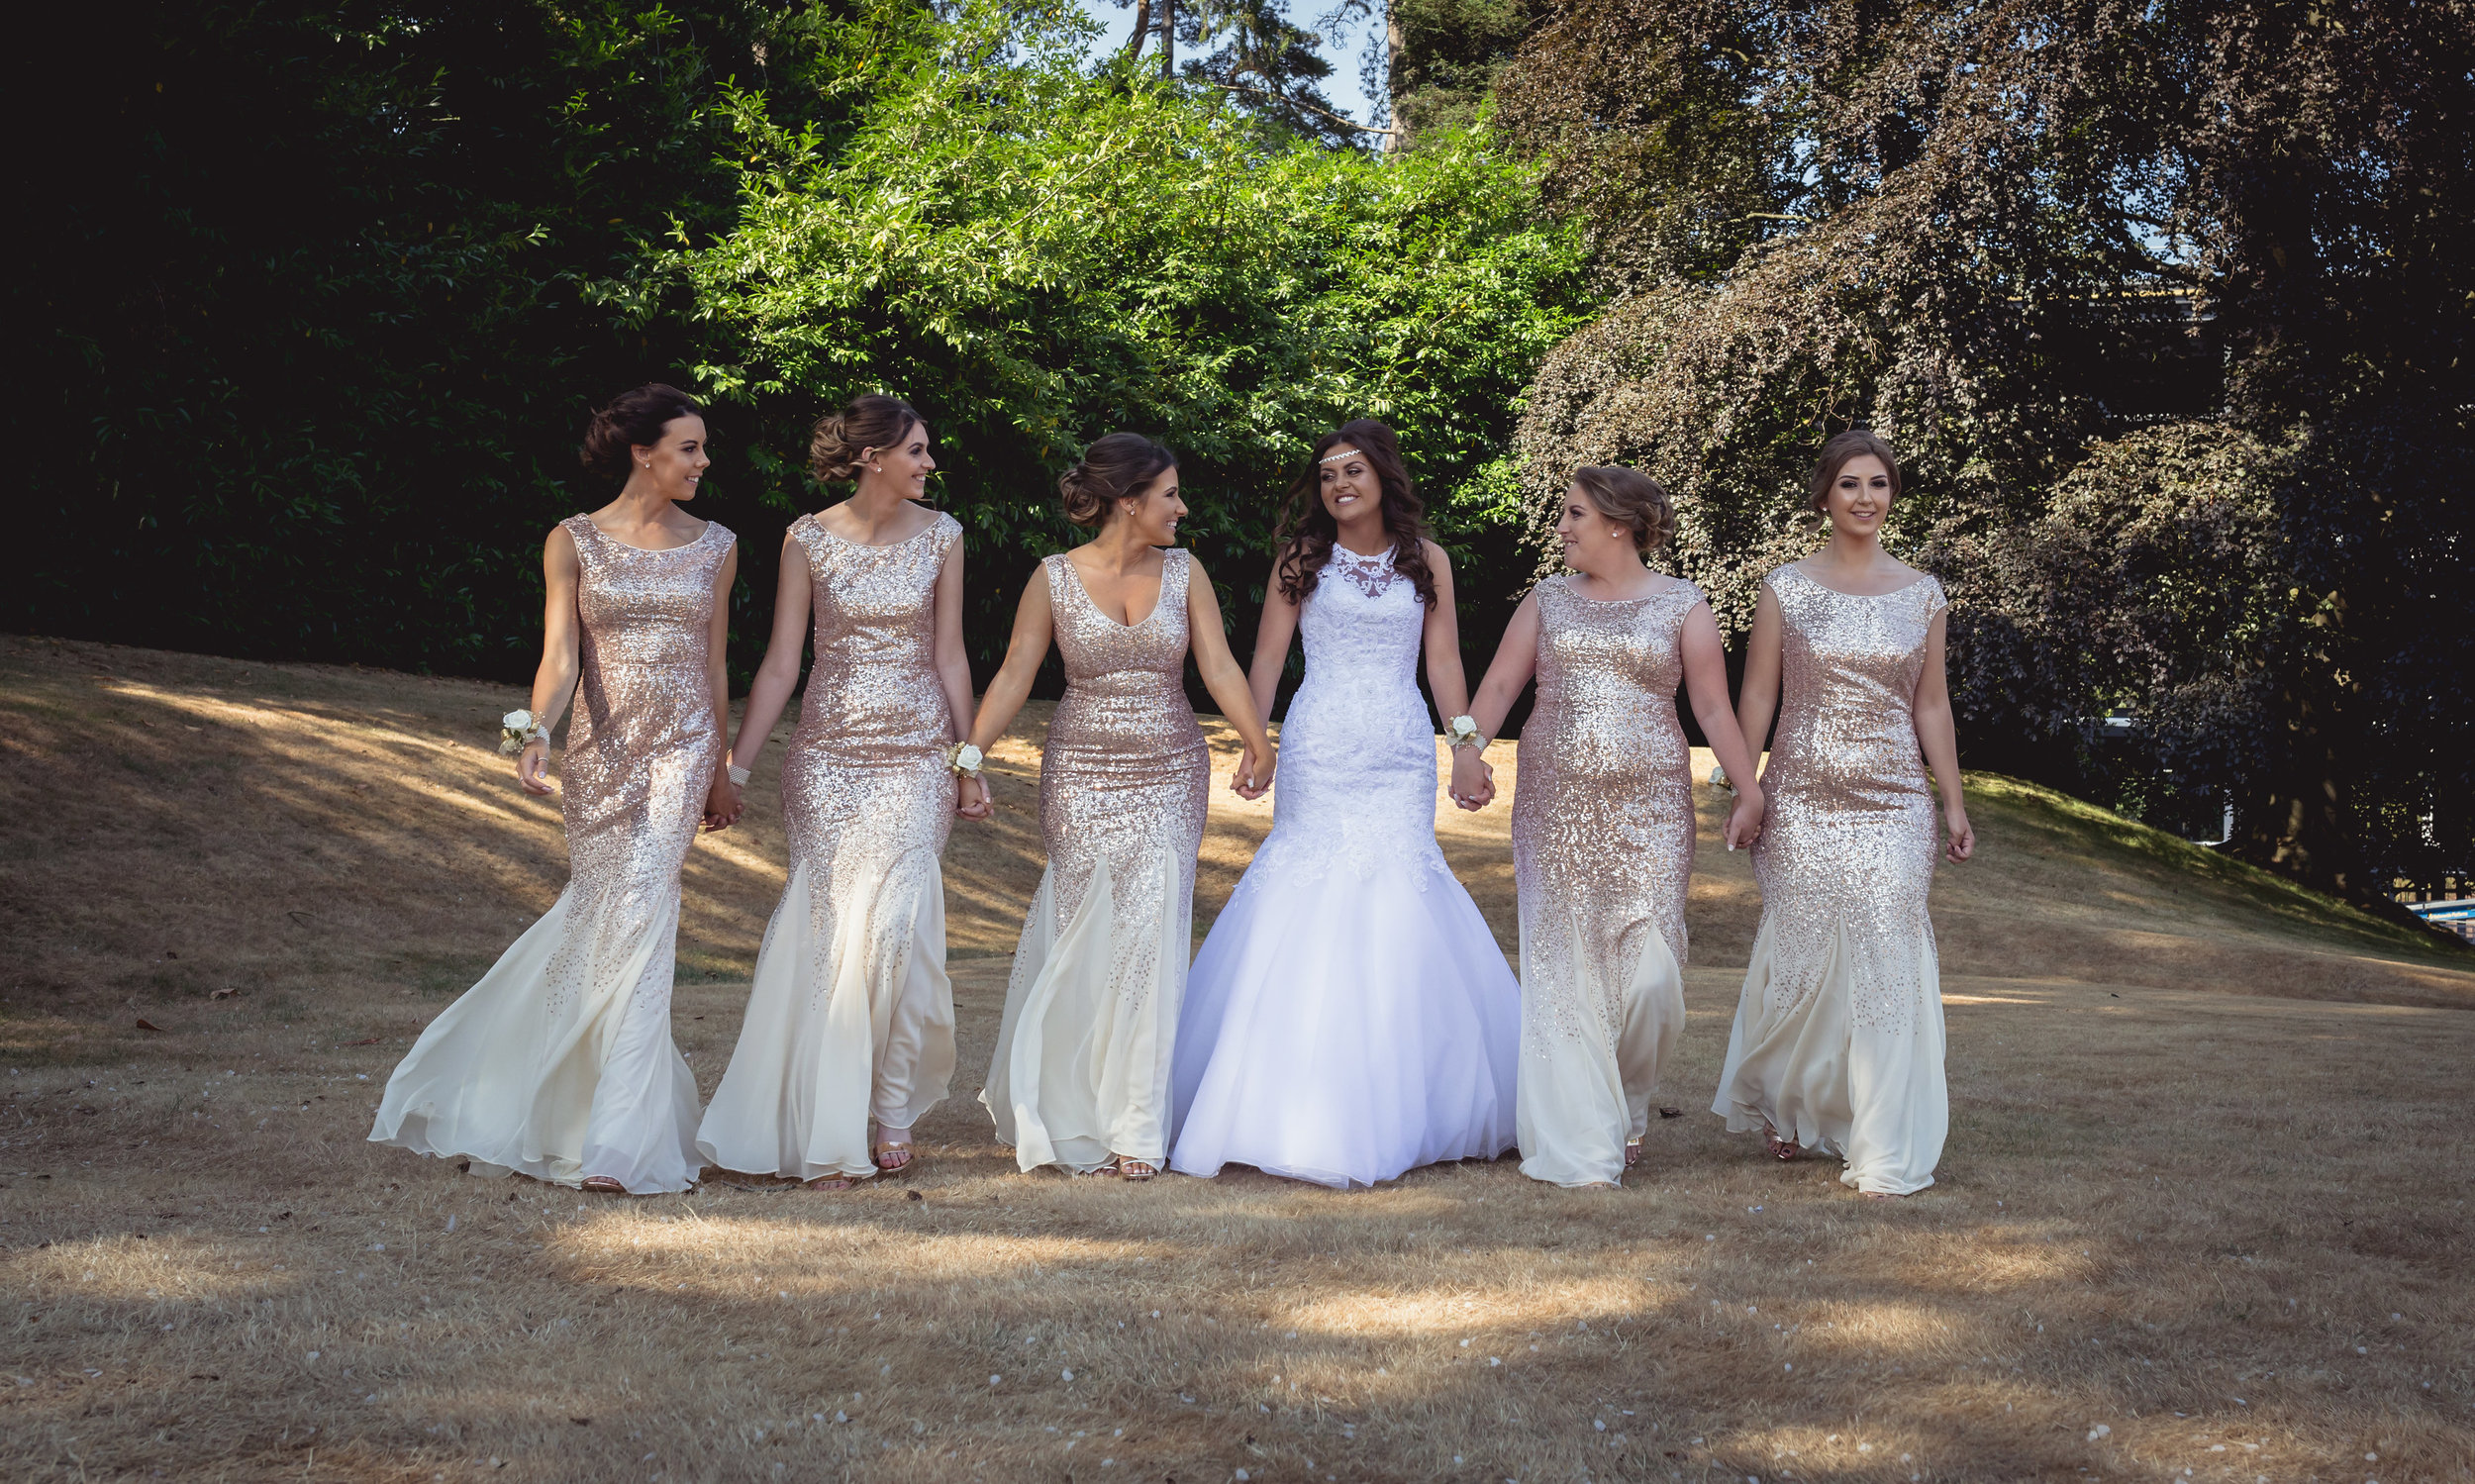 Photograph of bride and her bridesmaids